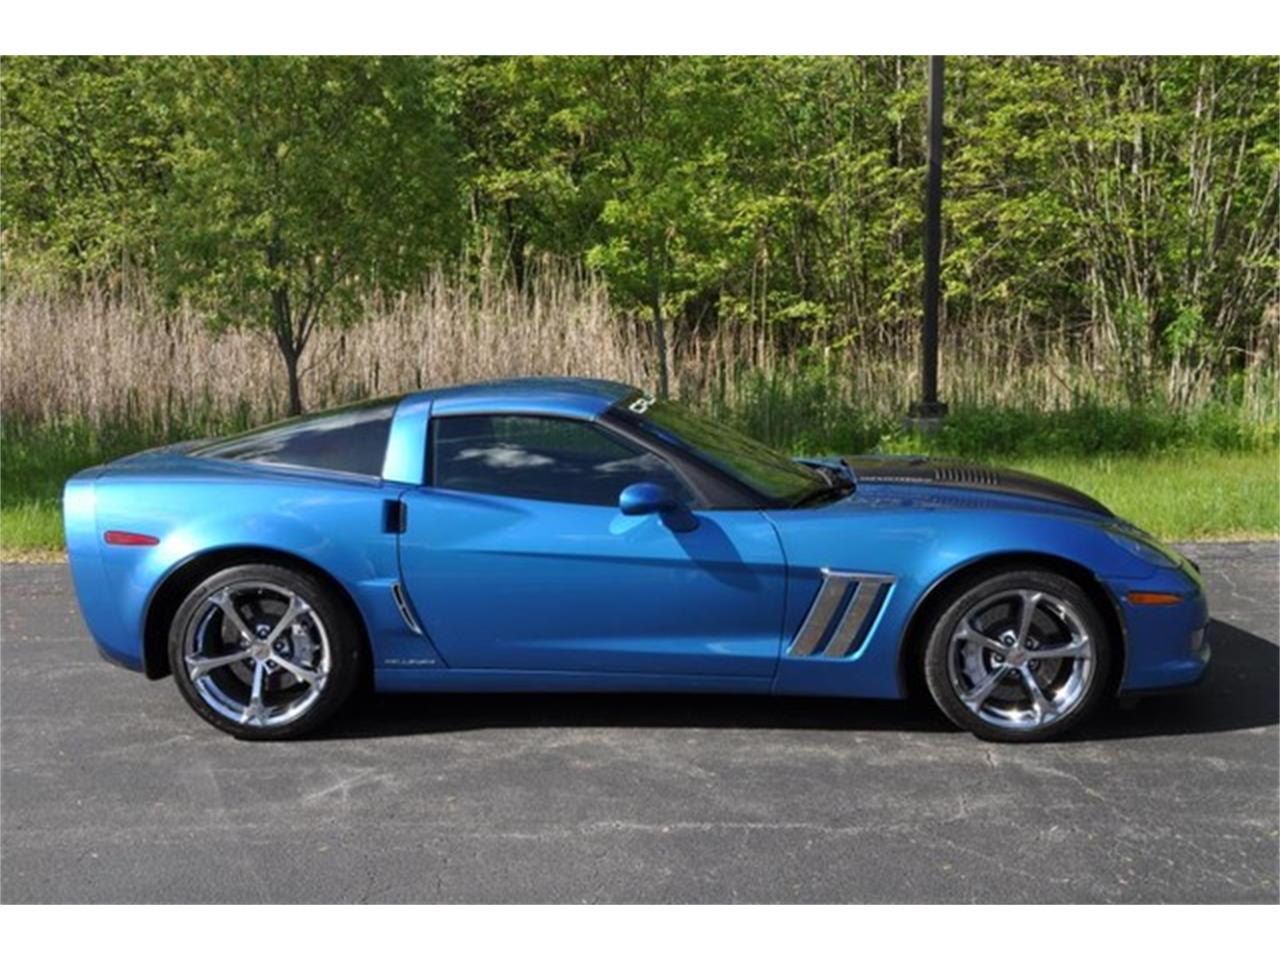 Large Picture of '11 Chevrolet Corvette located in New York - $49,999.00 Offered by Prestige Motor Car Co. - Q58H